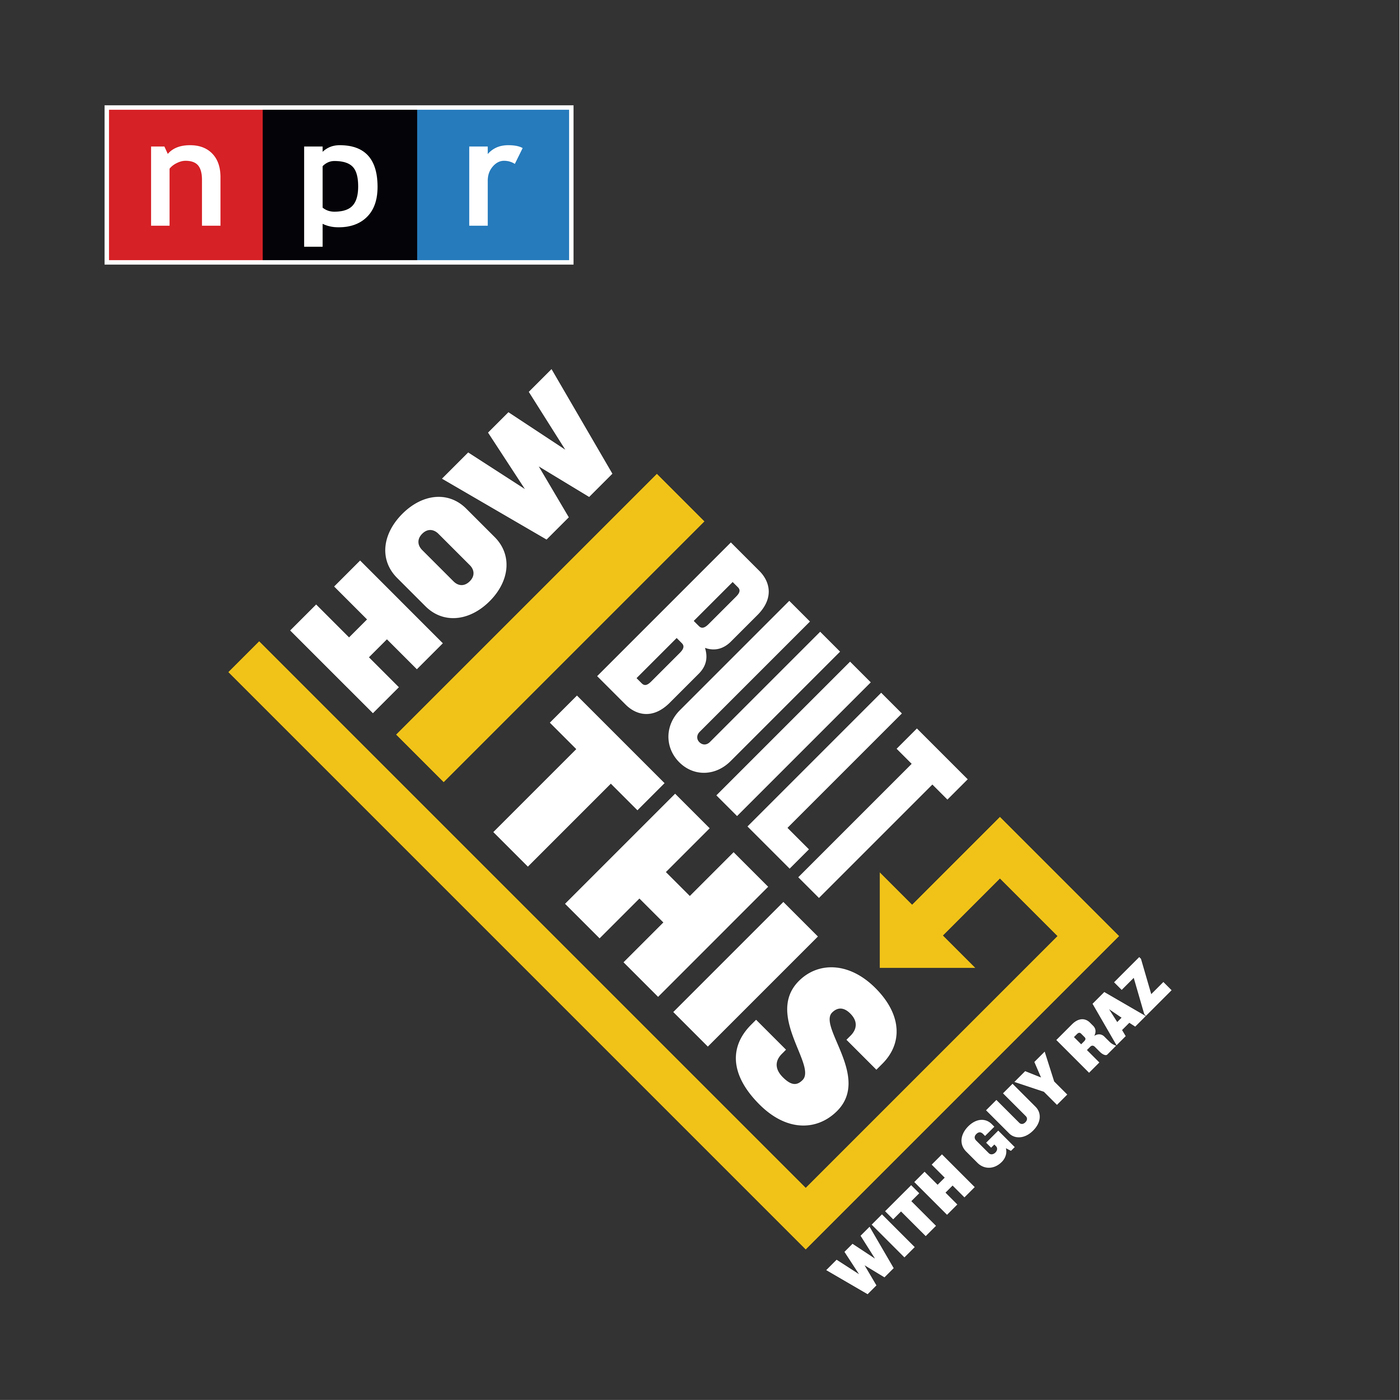 How I Built This with Guy Raz - Guy Raz interviews a myriad of entrepreneurs and walks through their story of how they built their business. The series is great for listeners wanting to get a better understanding of how companies got started and hear the different struggles and successes that each entrepreneur has had on the way to success.